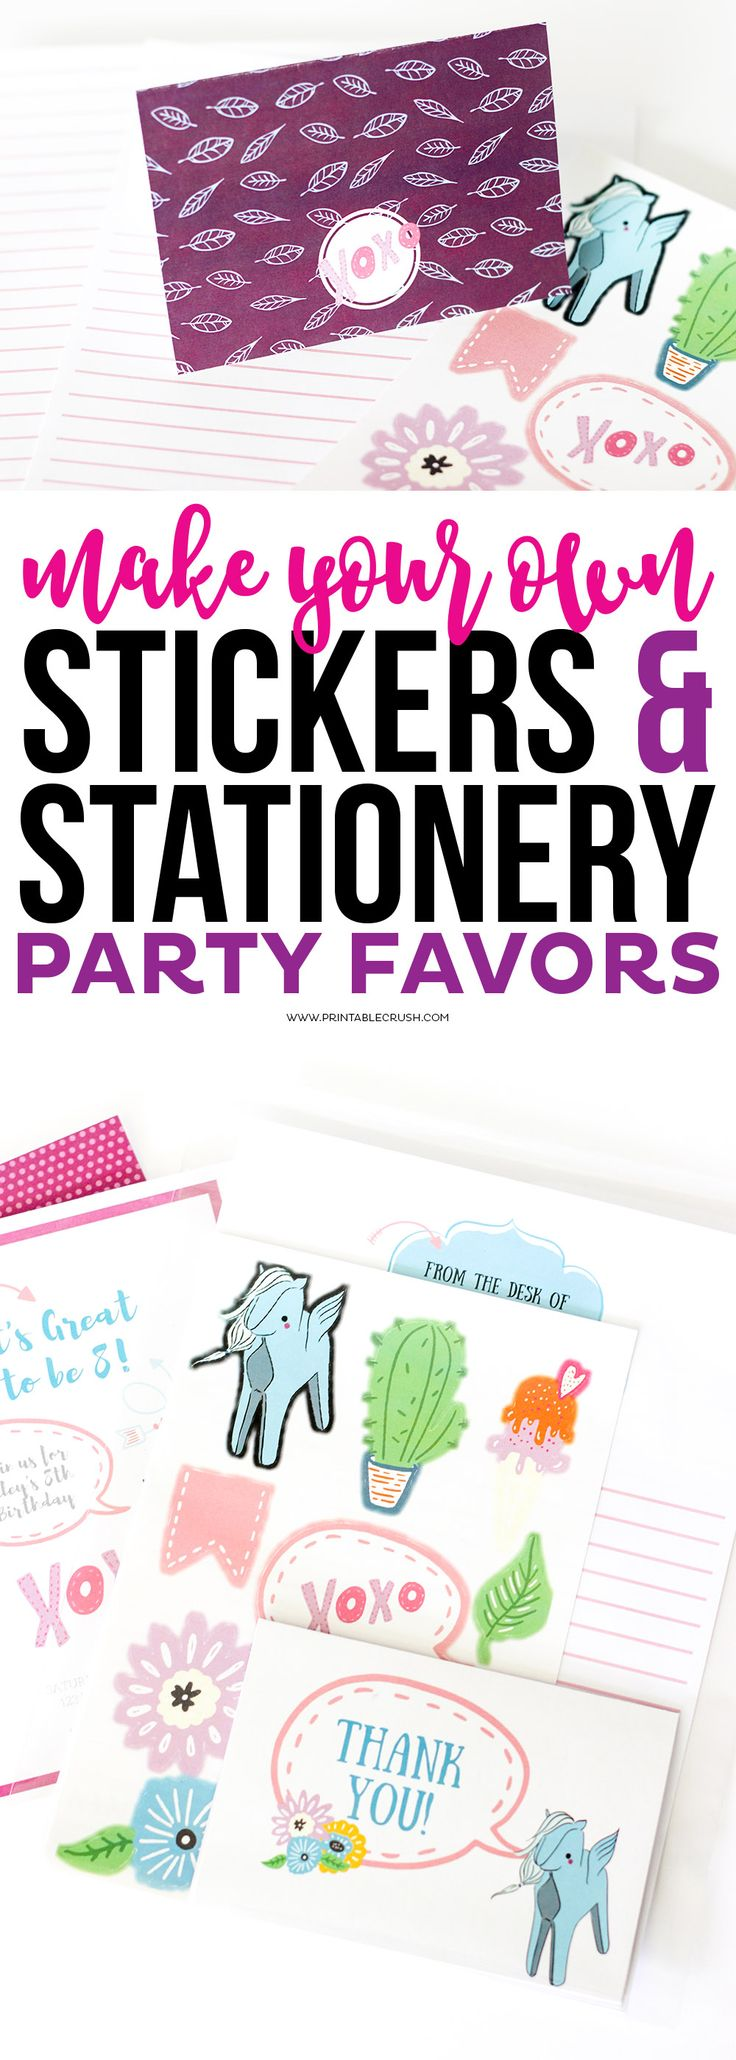 Bumper stickers design your own - Use Premade Graphics And The Cricut To Make Your Own Stickers And Stationery Party Favors